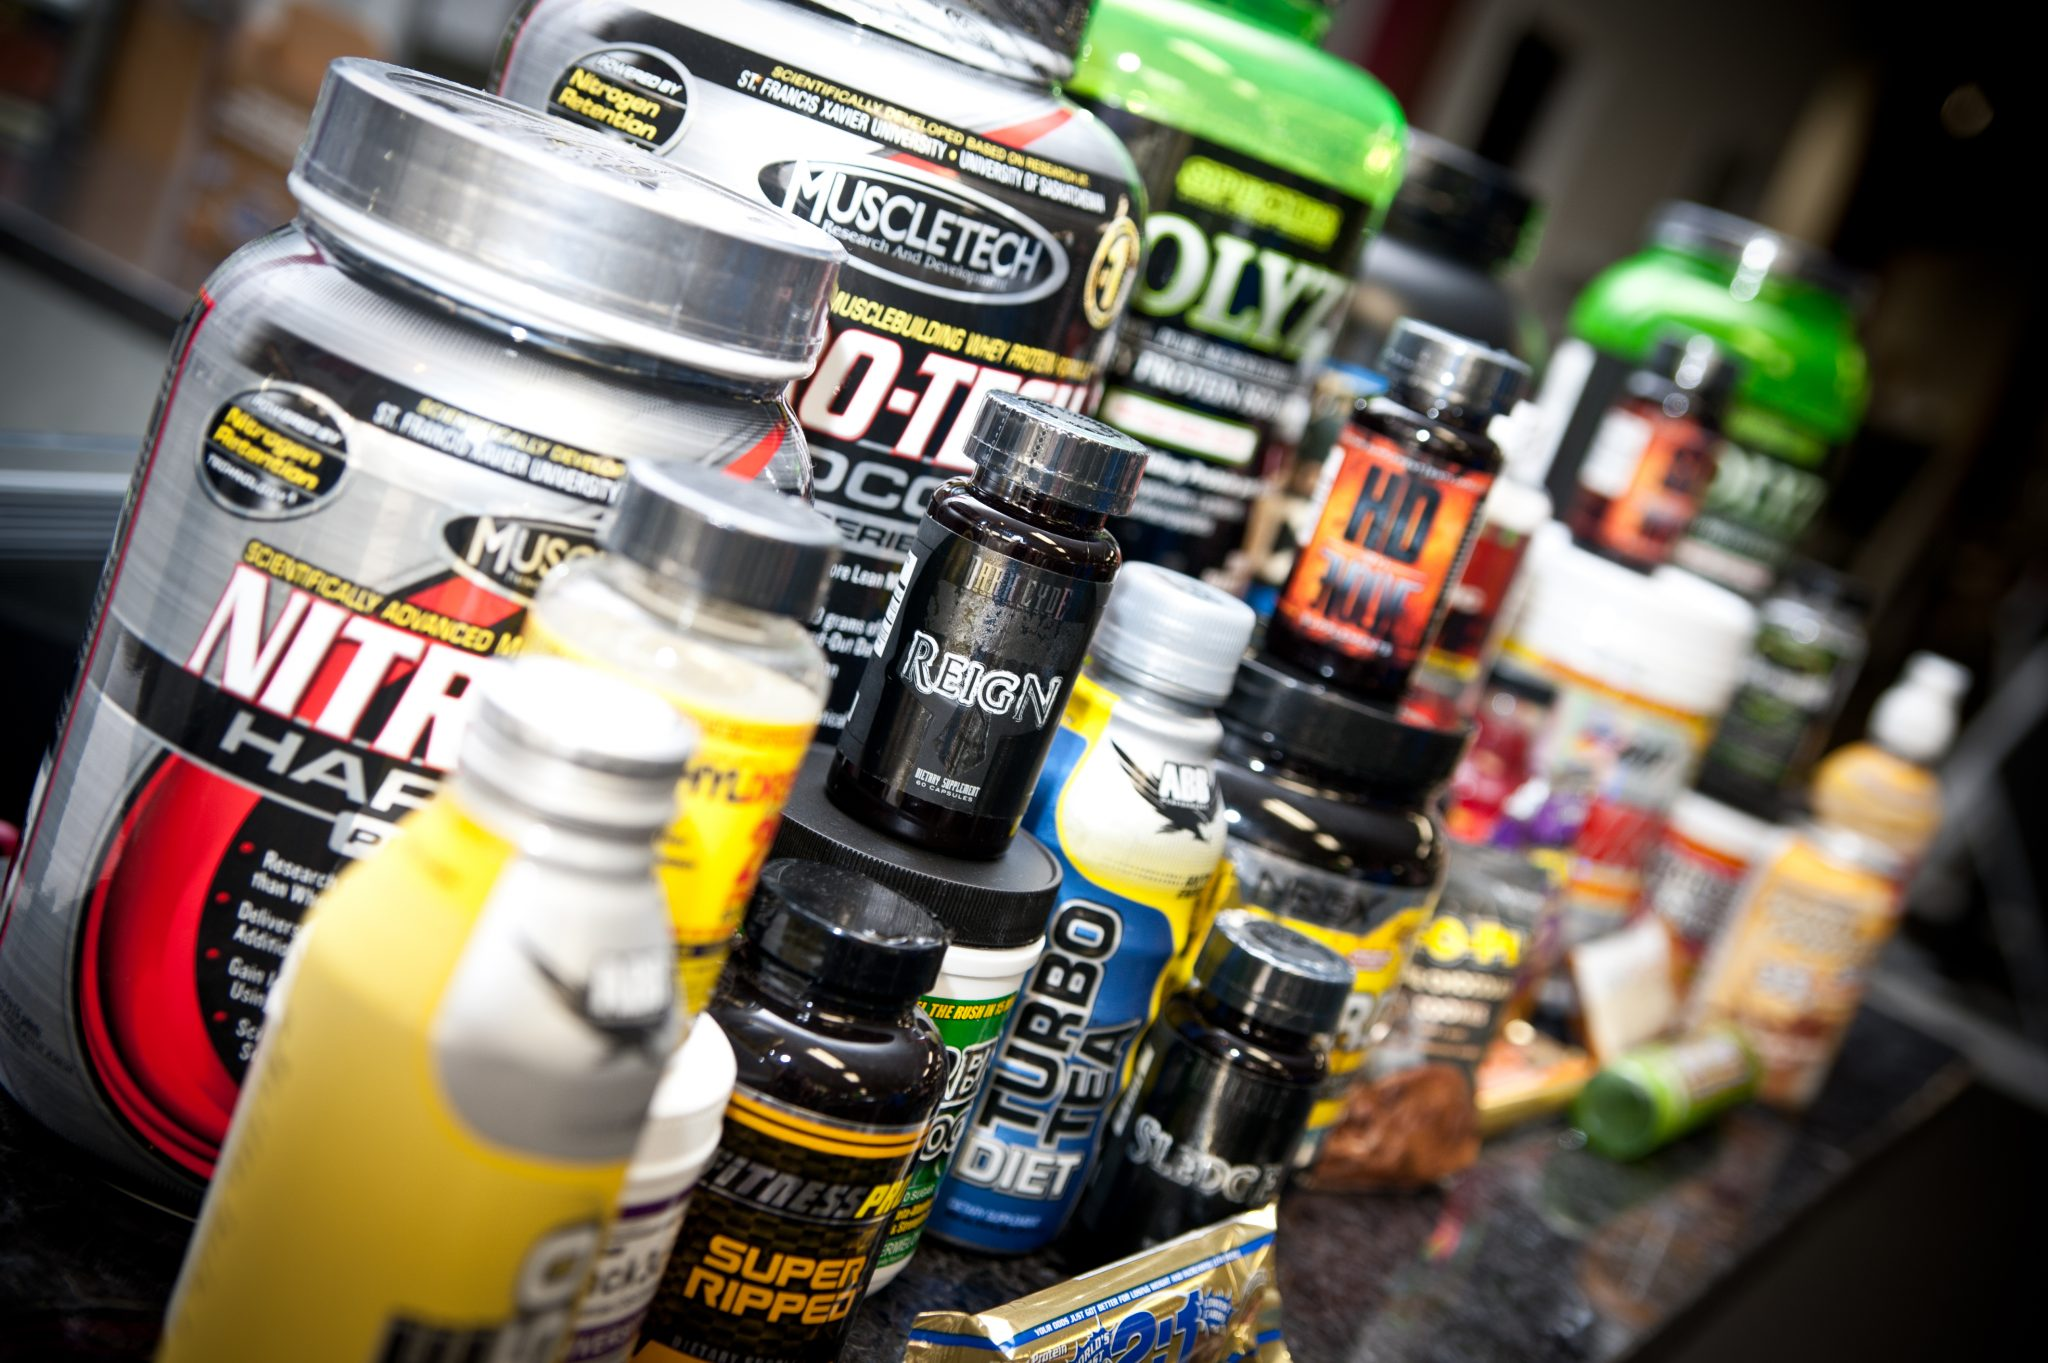 Supplement recommendation by Grind hard fitness